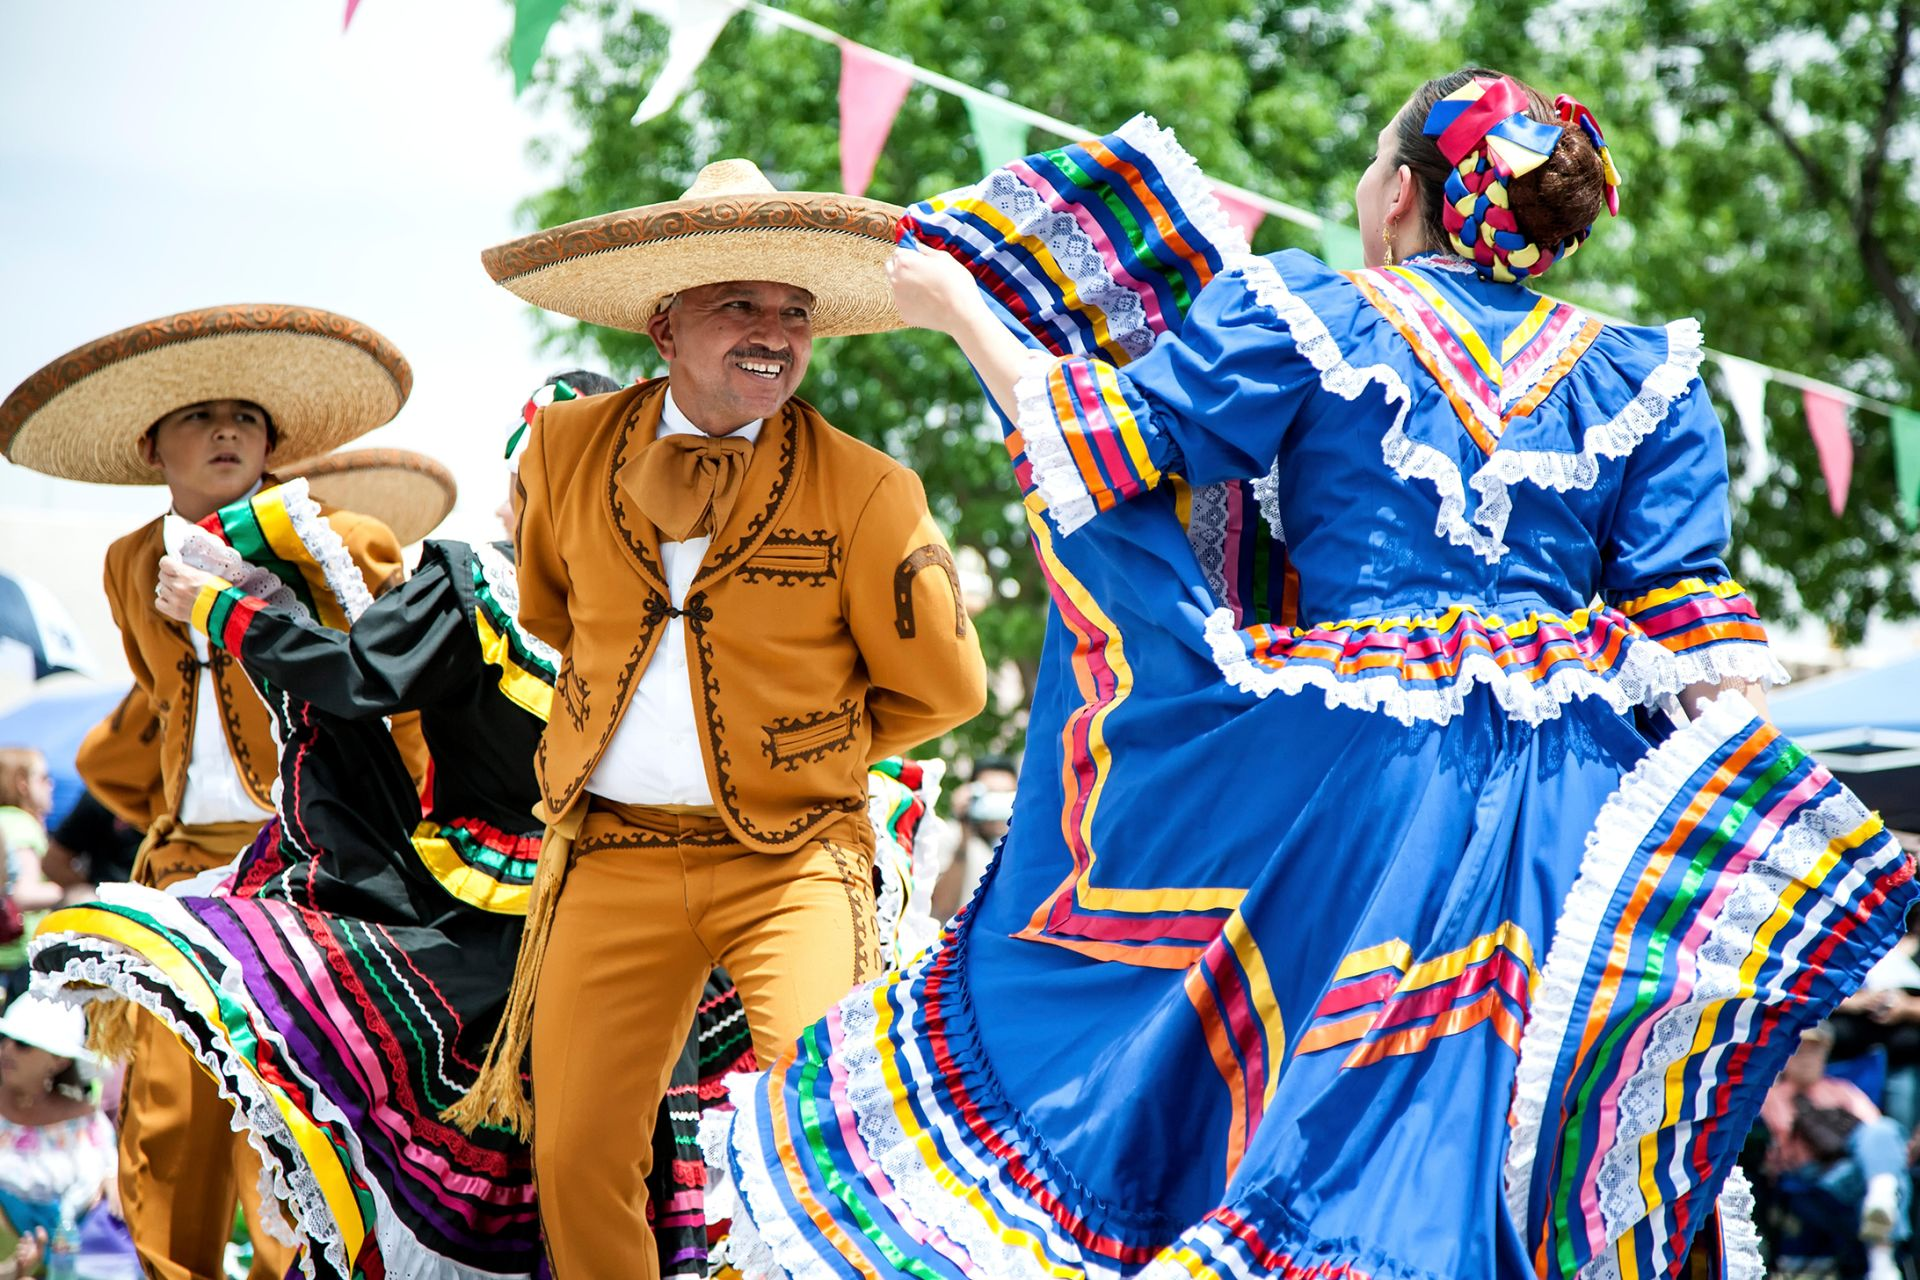 Uncategorized 5 De Mayo Facts cinco de mayo facts mexican holidays dk find out joyous dancing at this mayo